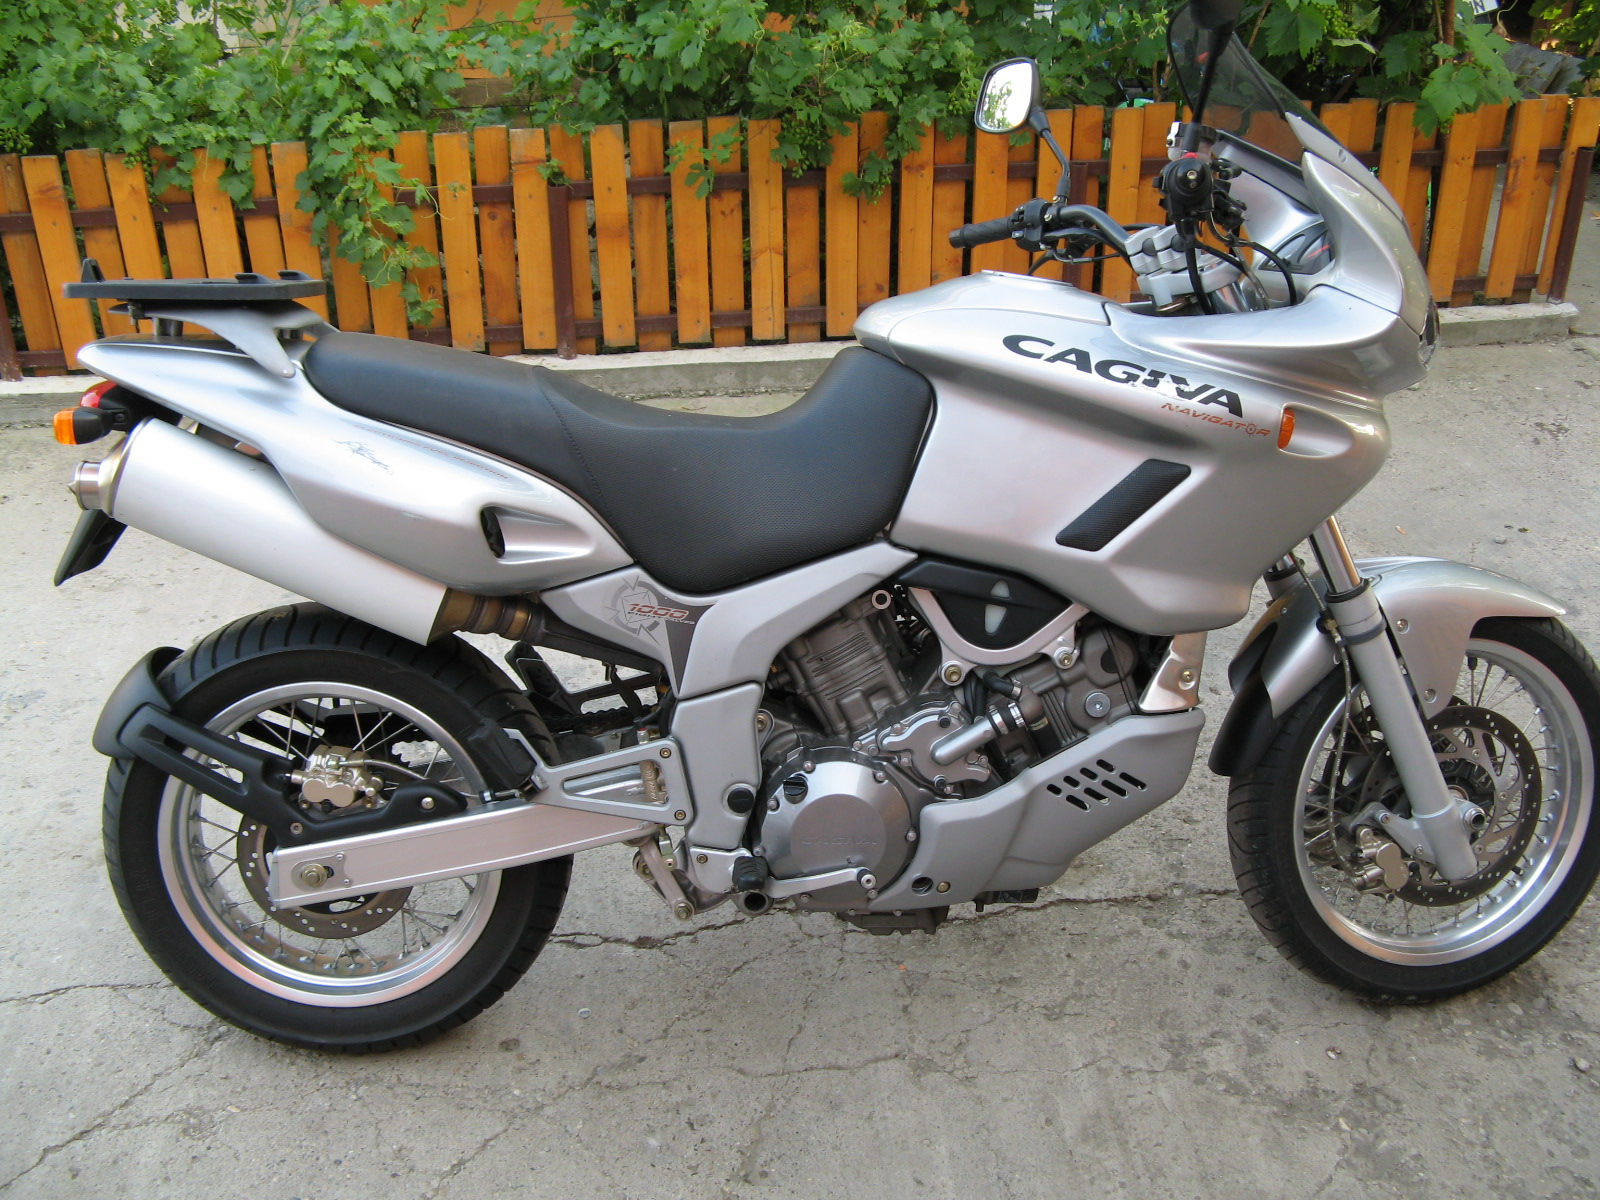 Cagiva Navigator 1000 2001 images #67691